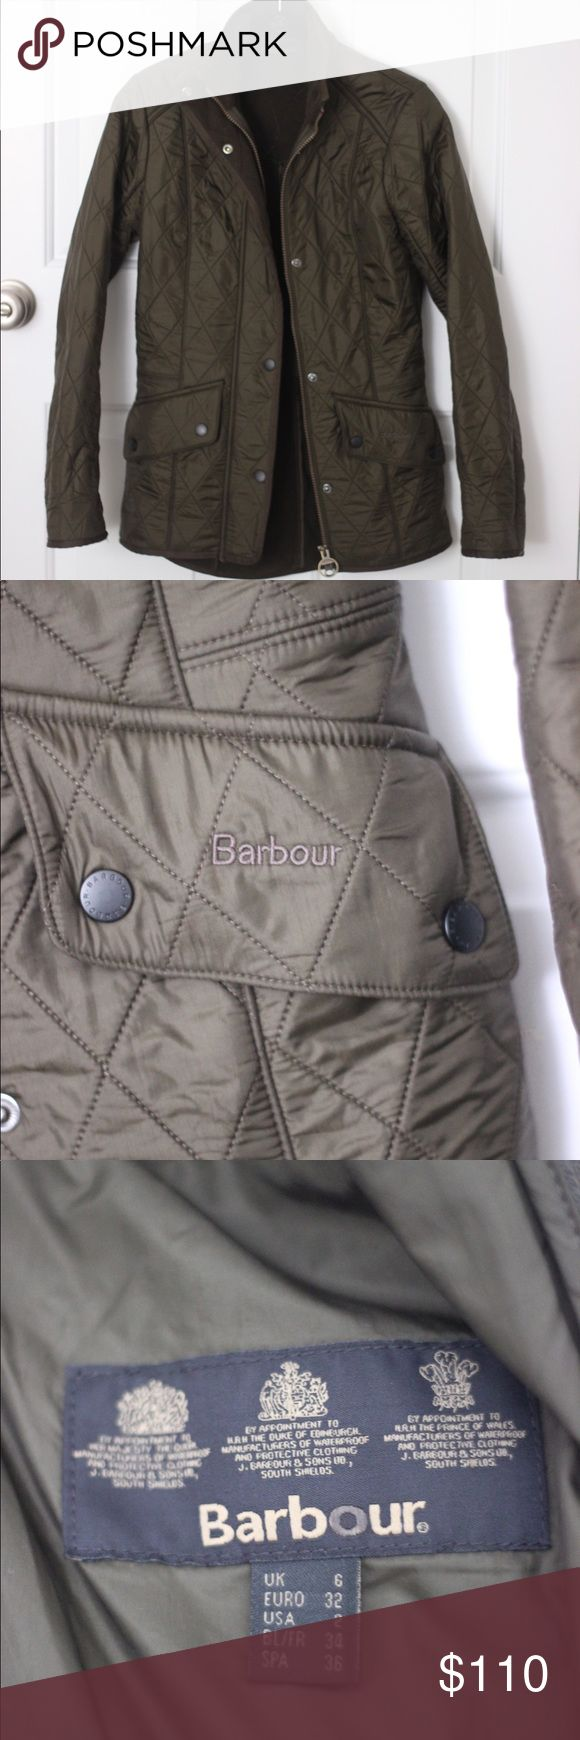 Barbour Quilted Jacket In excellent condition! Barbour quilted jacket in size 2! Barbour Jackets & Coats